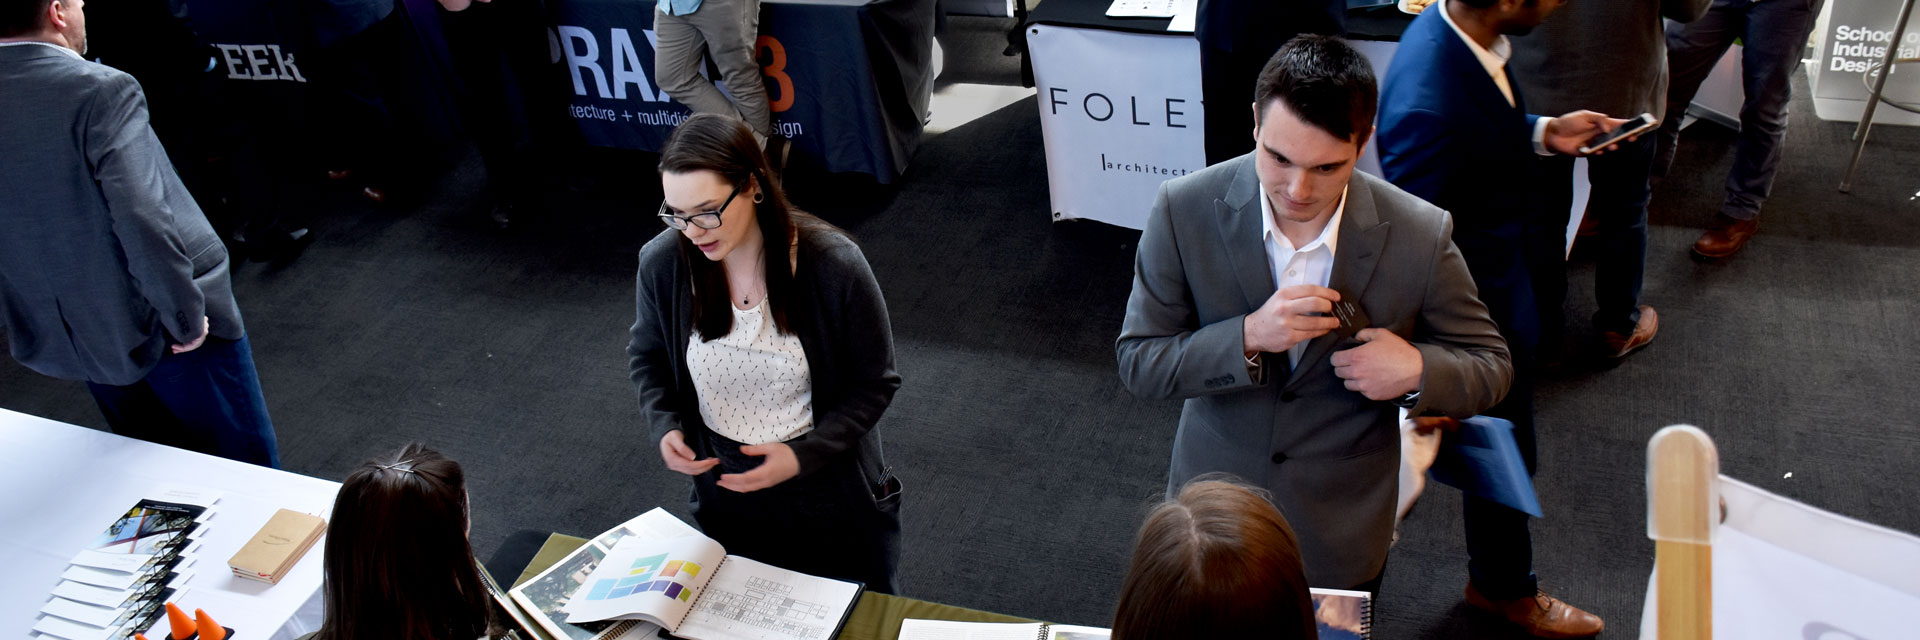 Students at Career Fair 2018 speaking to a recruiter.